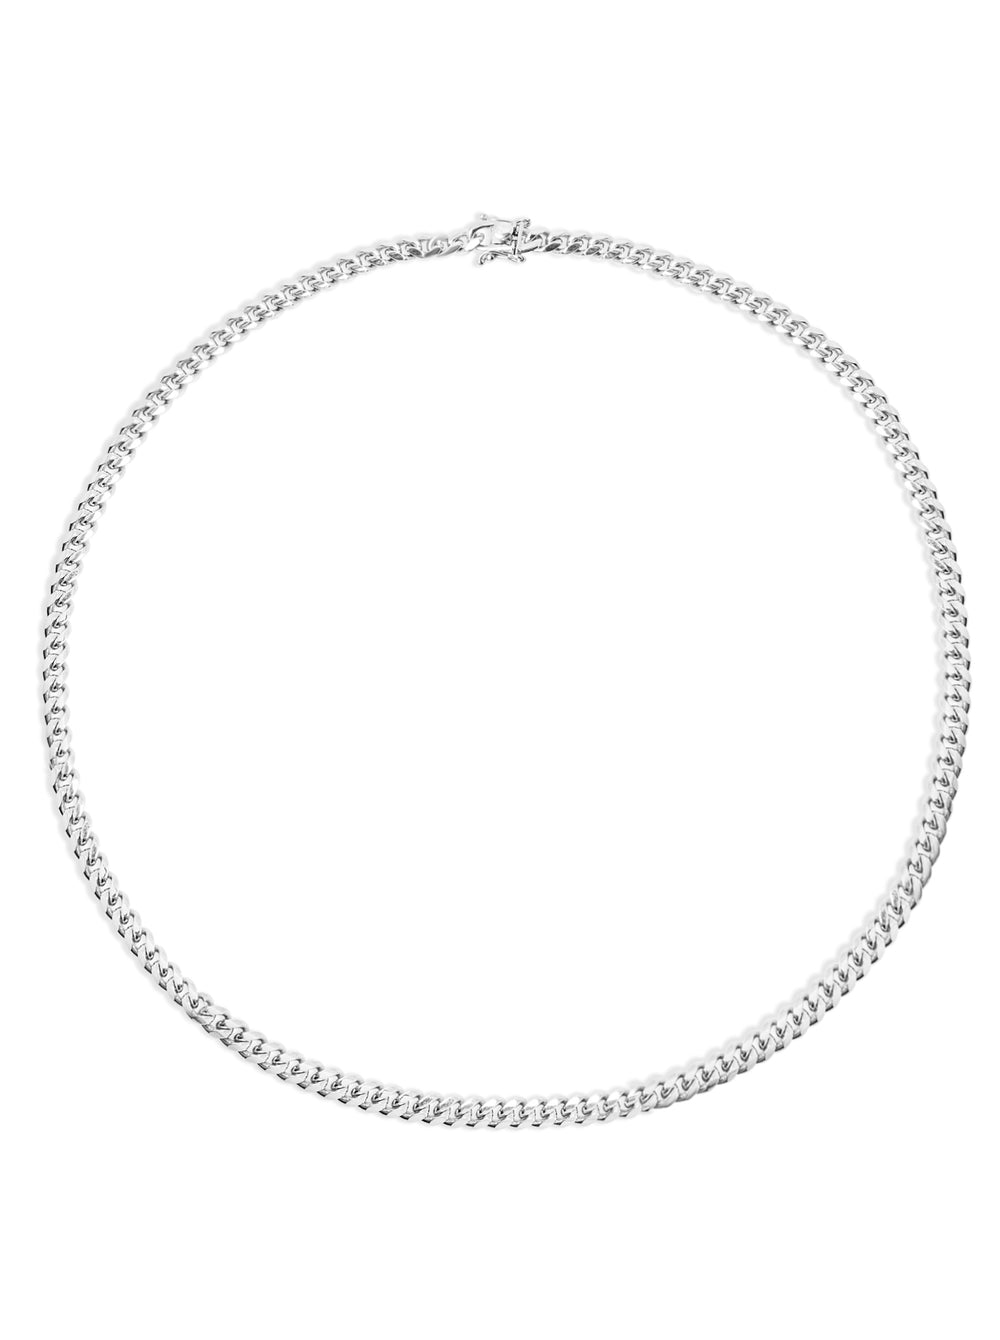 THE SILVER CUBAN LINK NECKLACE